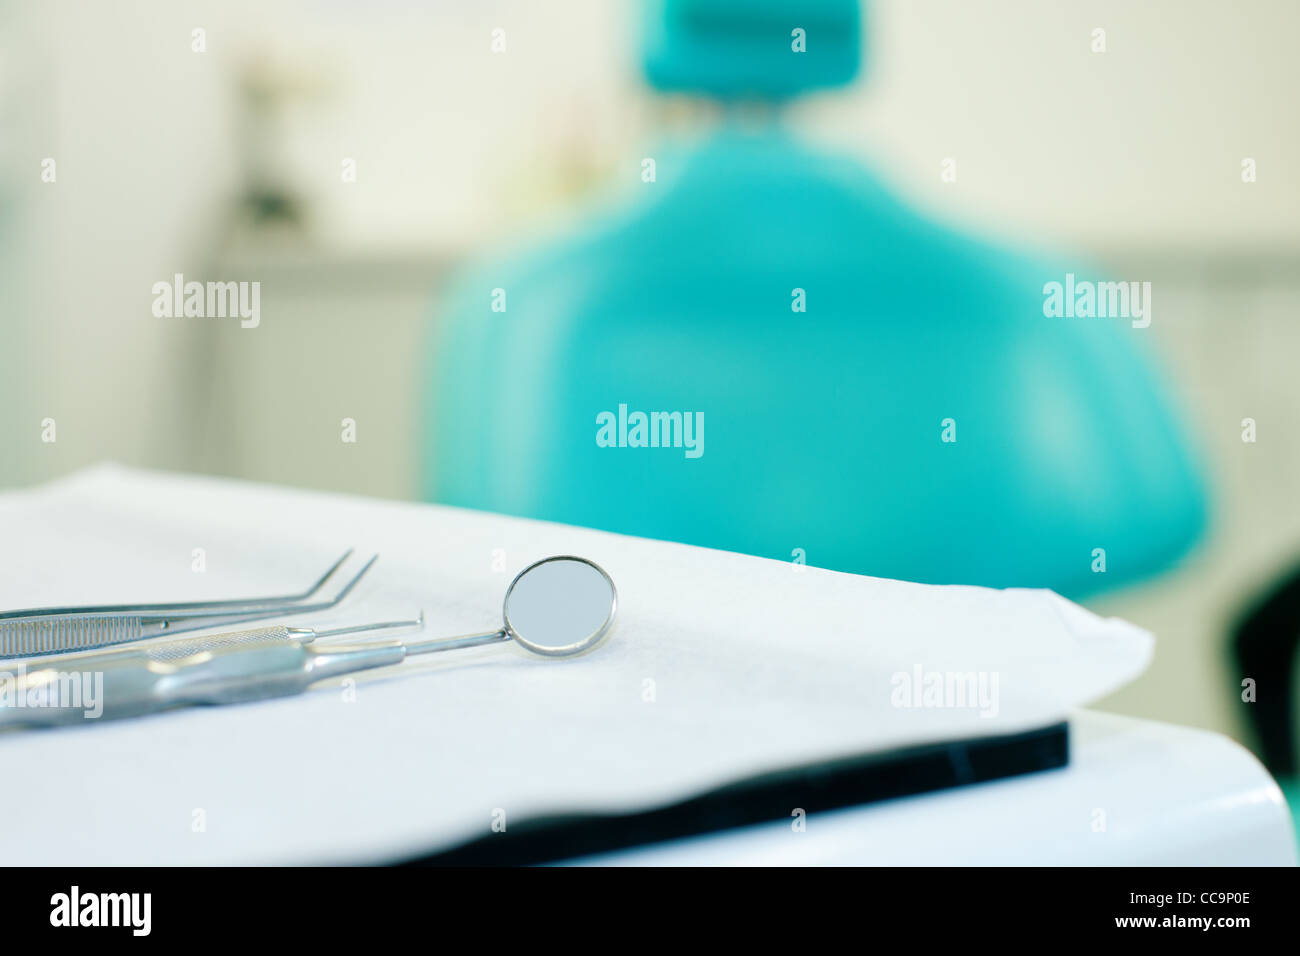 Still life of various tools of a dentist waiting to be used in the surgery - Stock Image